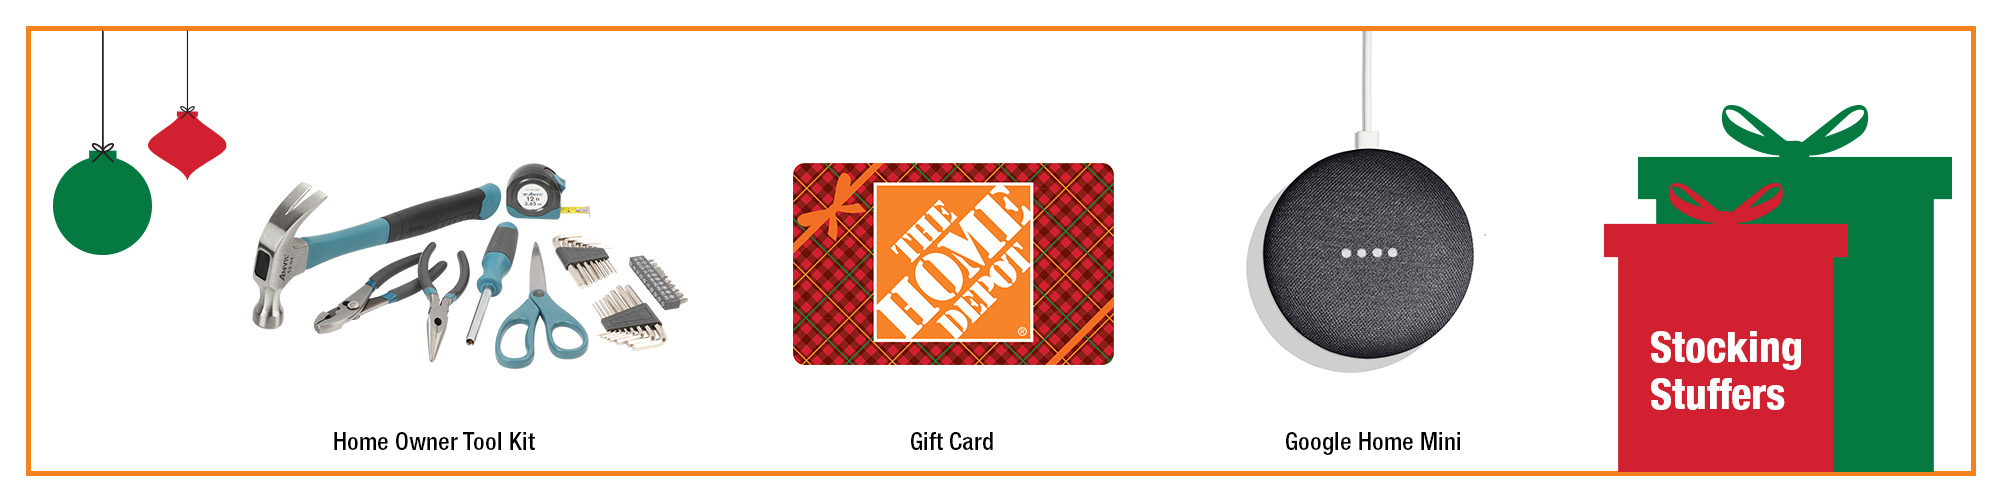 Stocking stuffers from The Home Depot